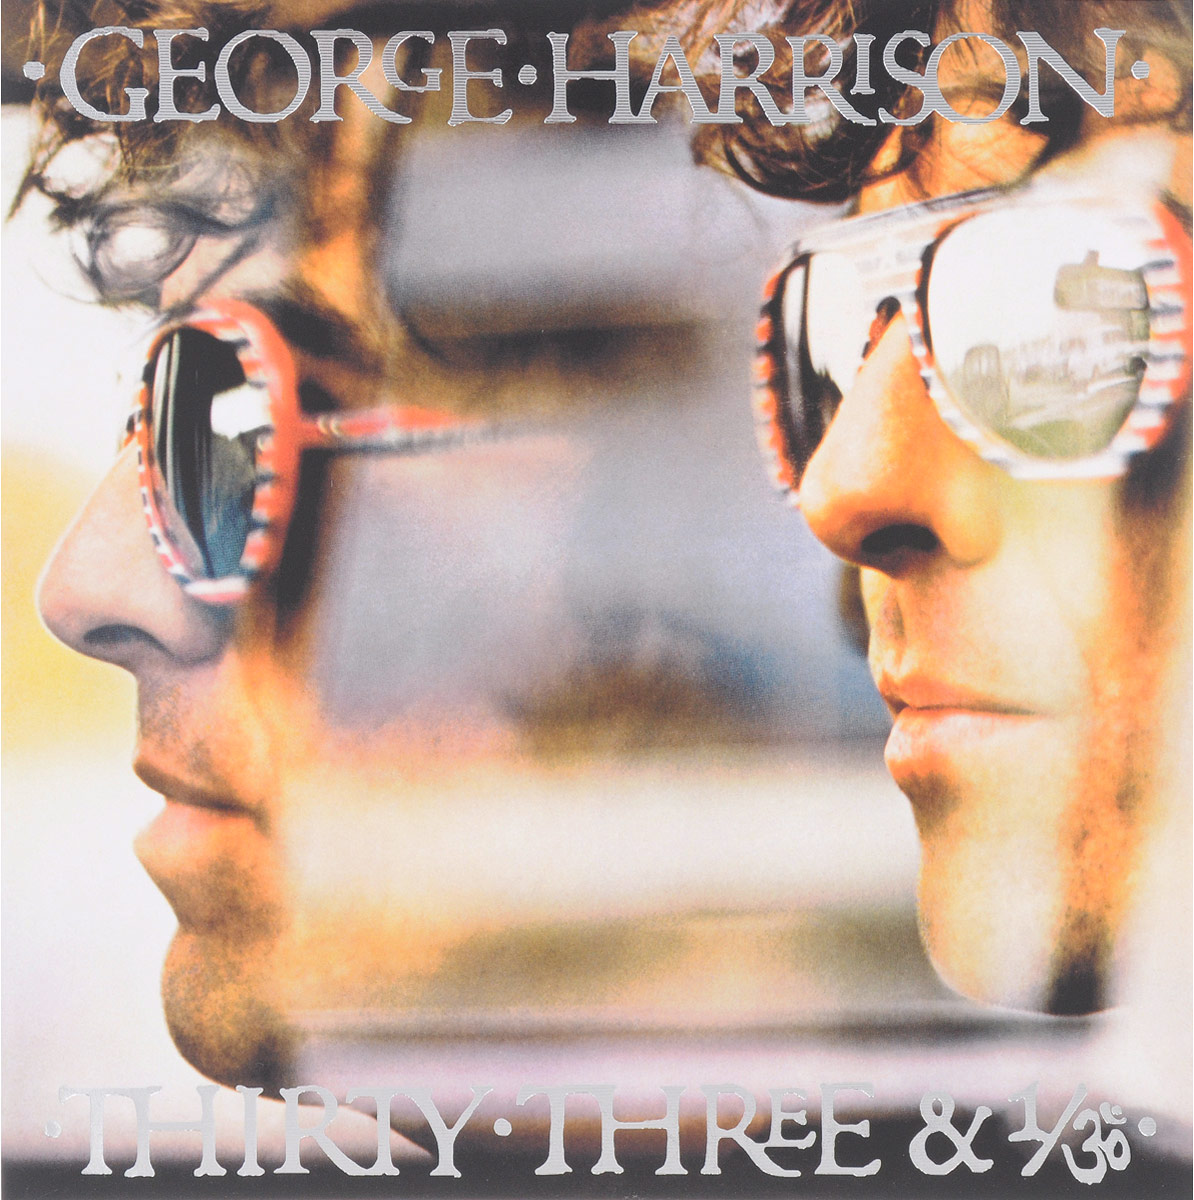 Джордж Харрисон George Harrison. Thirty Three & 1/3 (LP) джордж харрисон george harrison extra texture read all about it